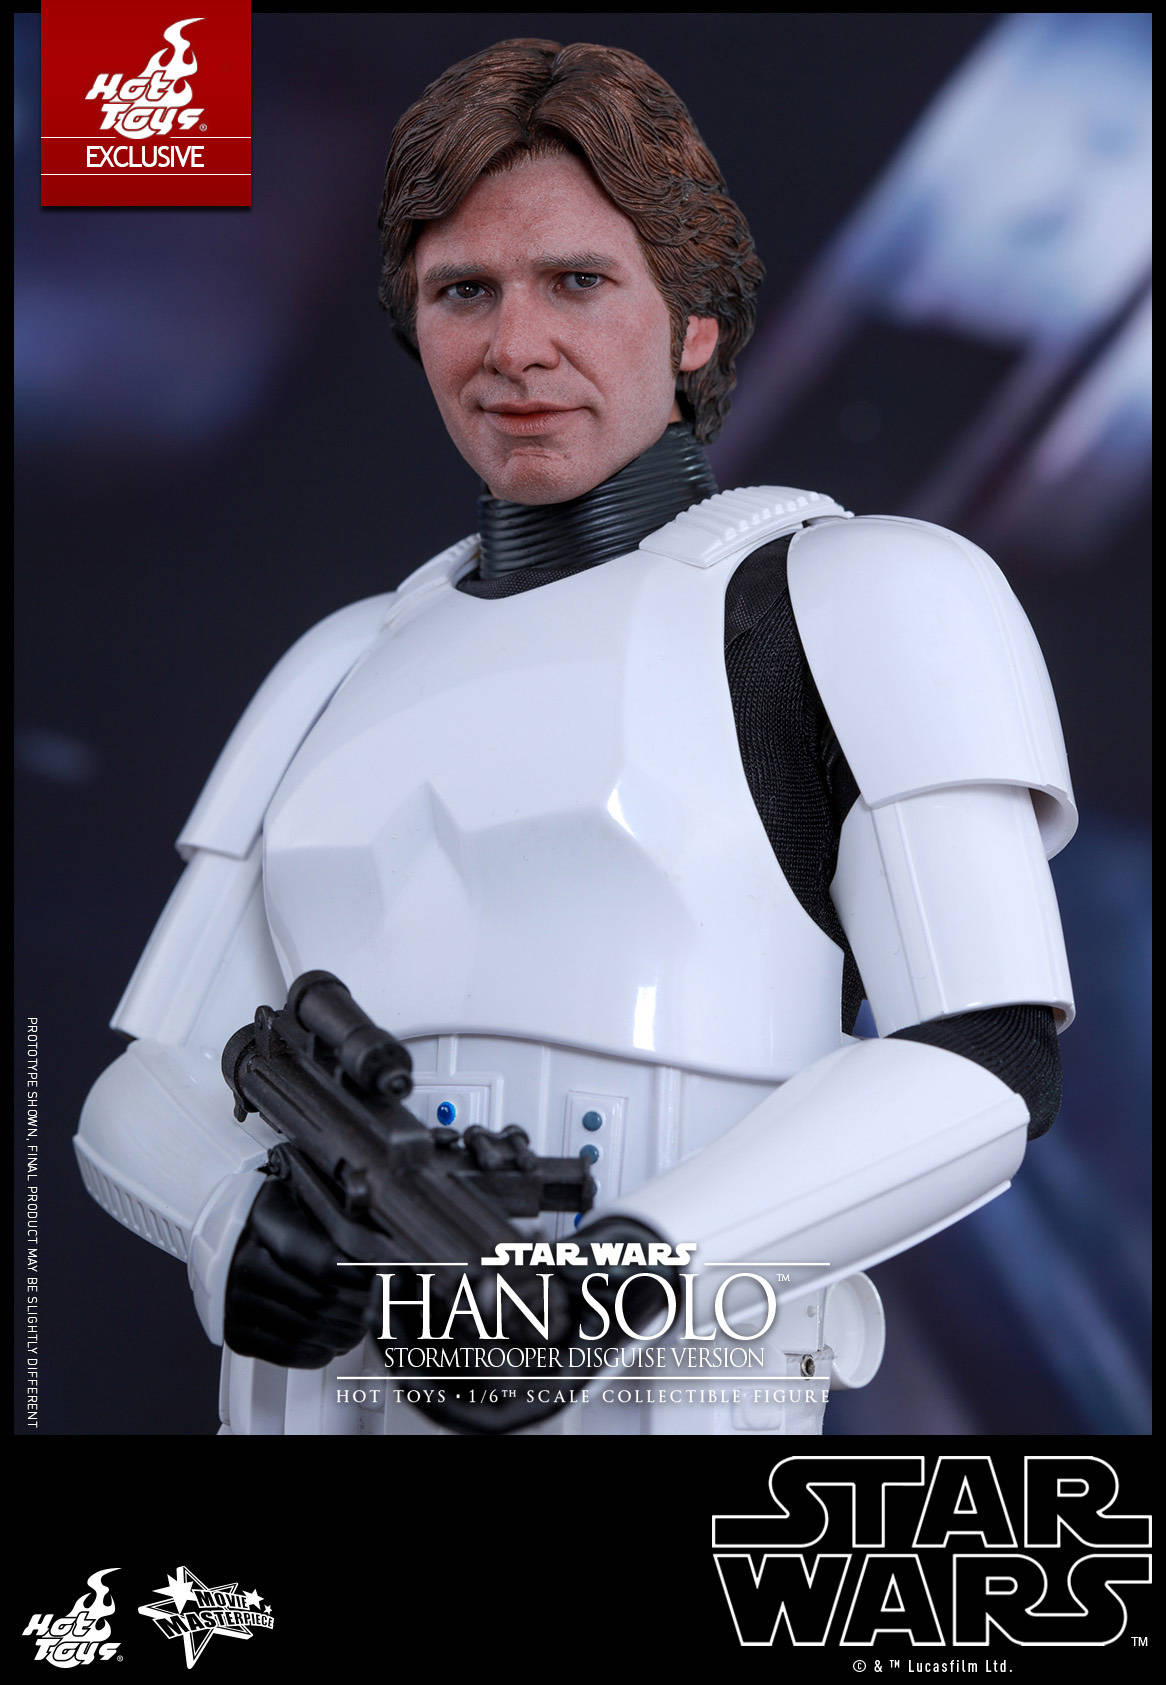 Hot-Toys---Star-Wars---Han-Solo-(Stormtrooper-Disguise-Version)-Collectible-Figure PR15